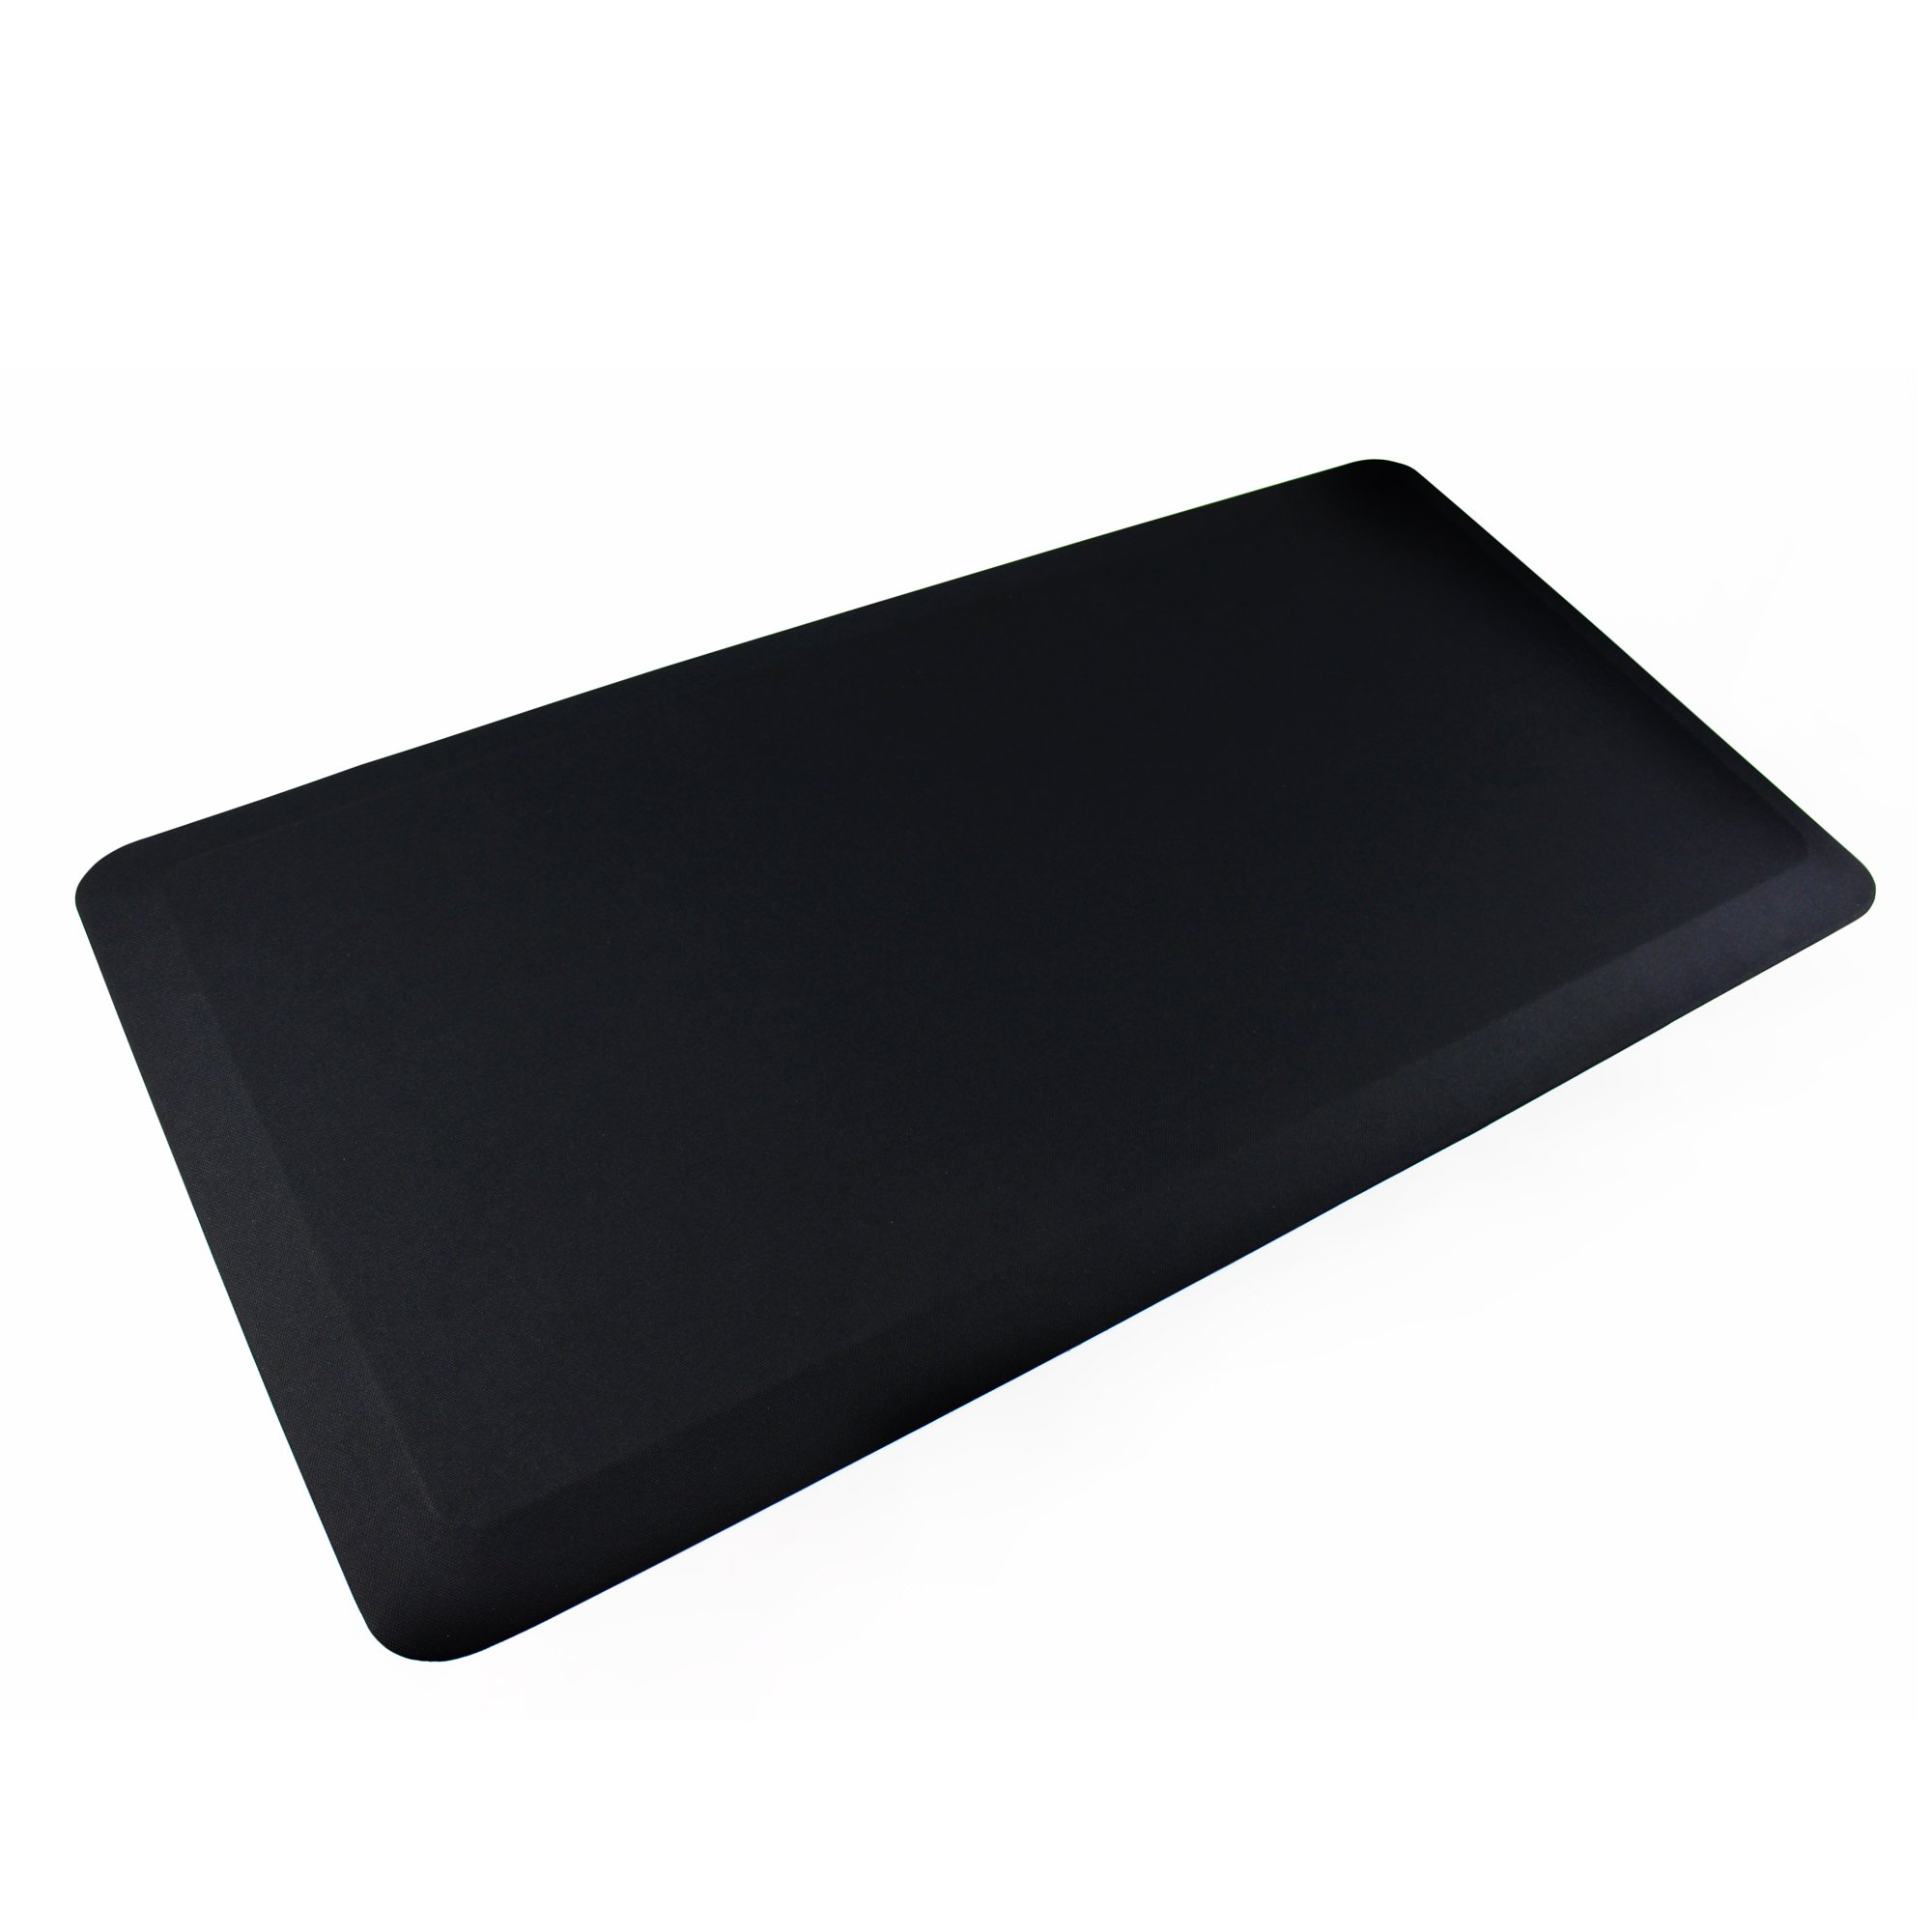 AFS-TEX System 3000, Anti-Fatigue Mat, Designed for Standing Desk Use, Carbon Black, 20'' x 39'' (FC35199ABM)